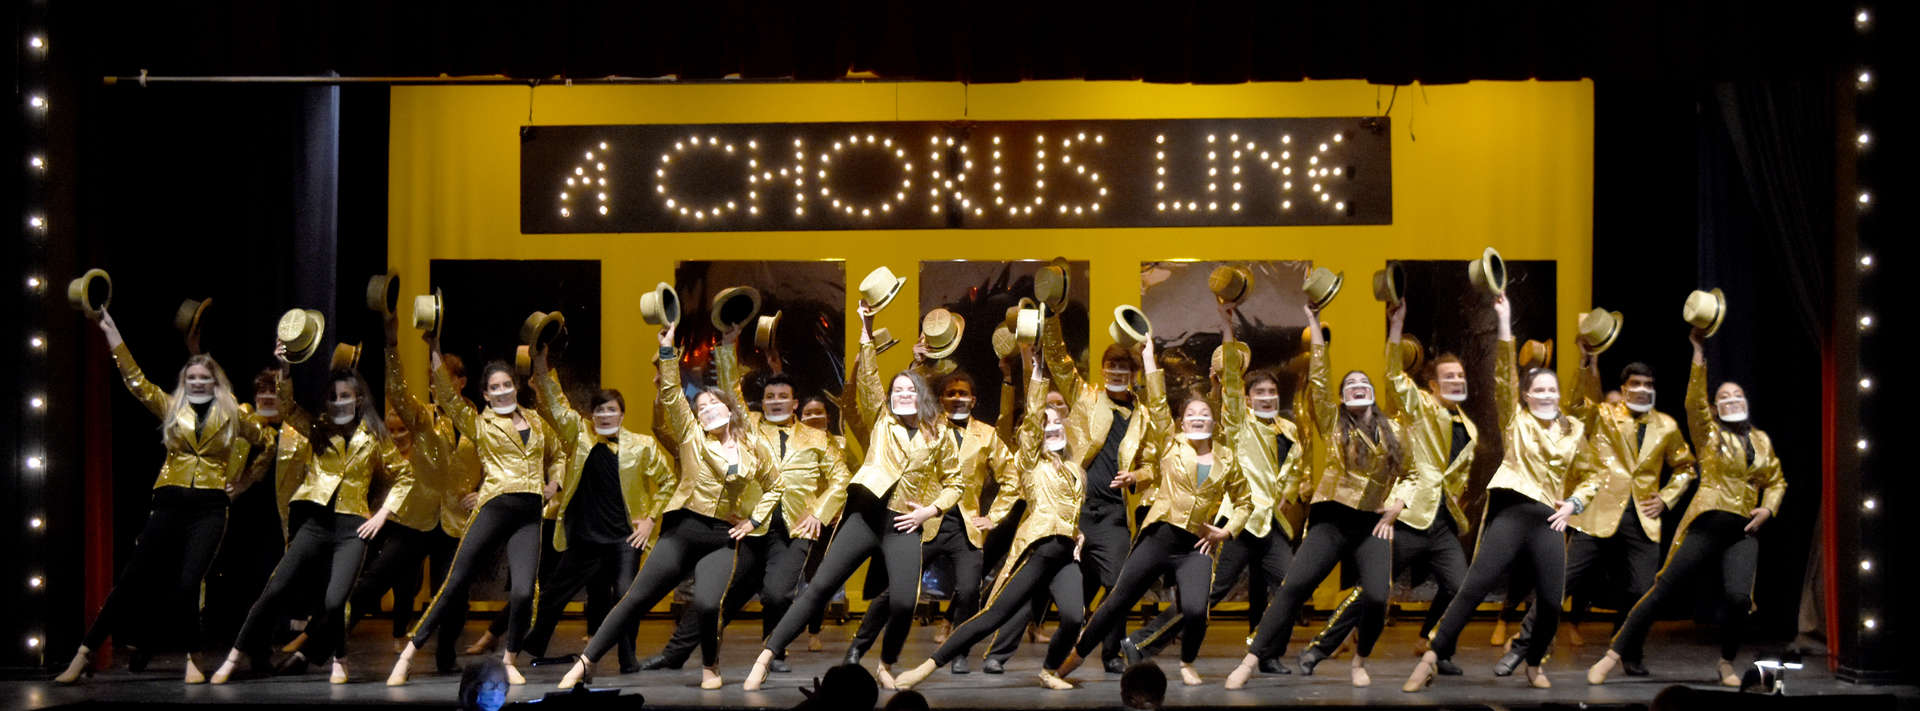 Student performers on stage for production of A Chorus Line